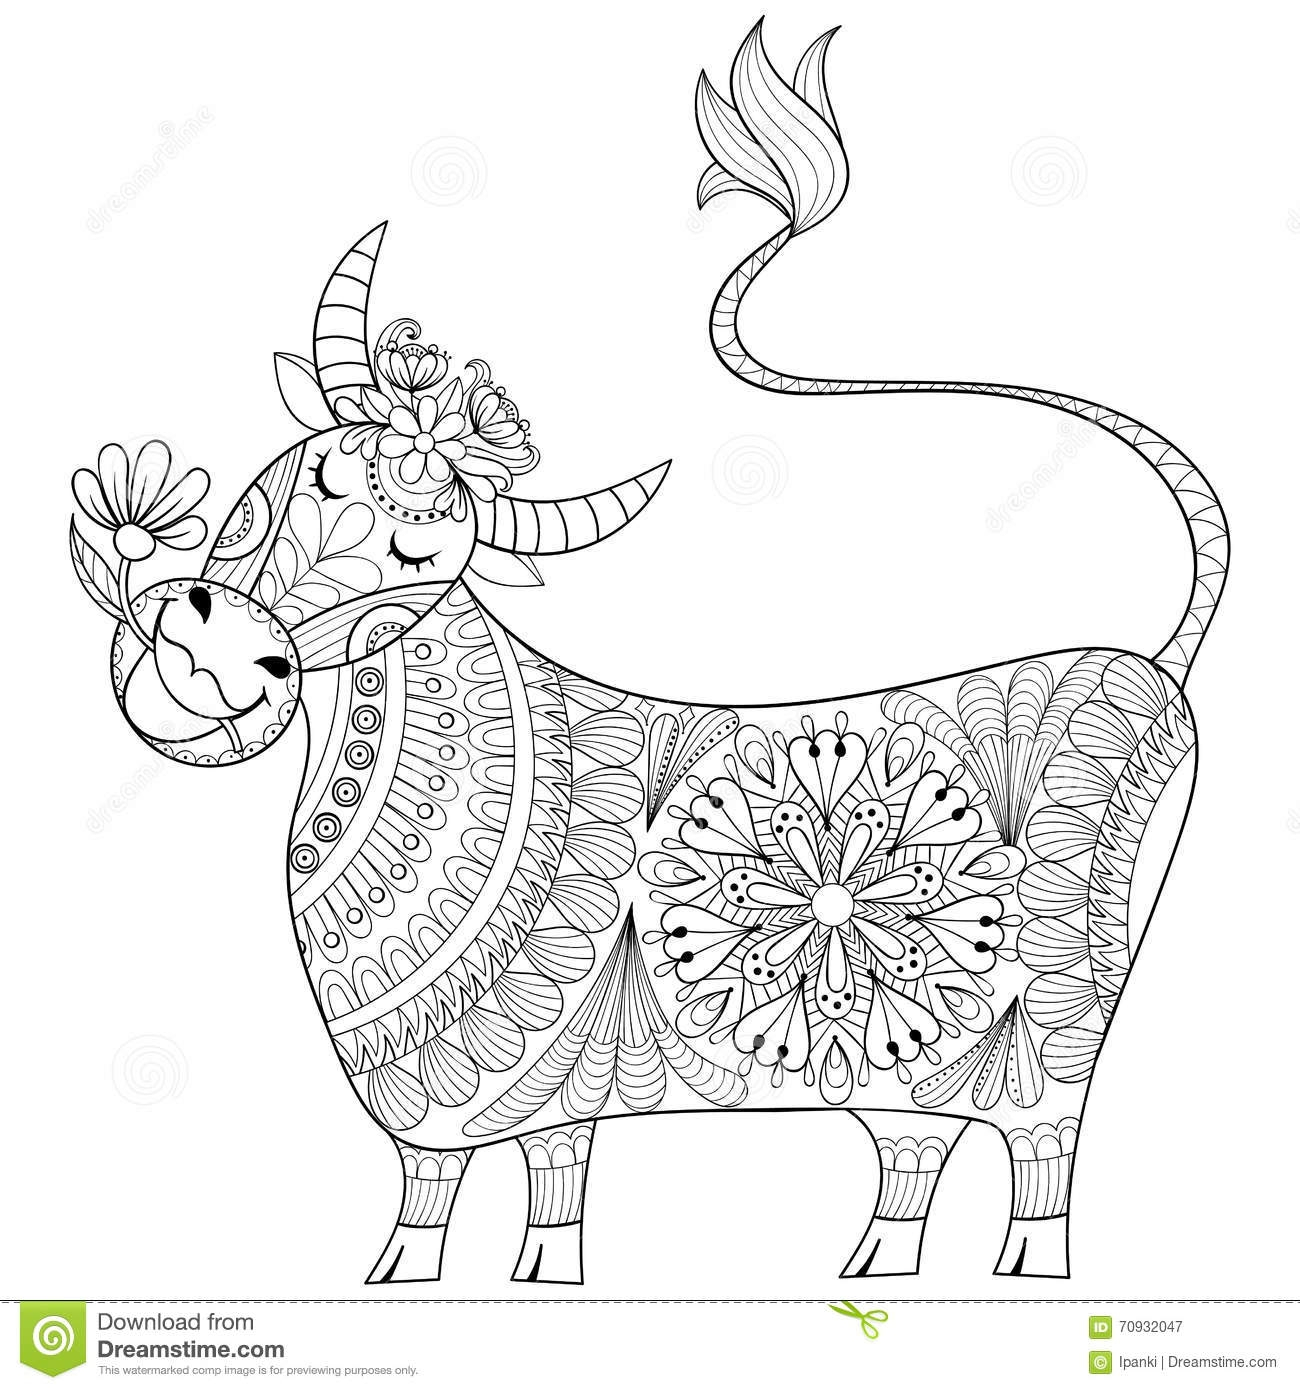 Coloring pages draw a buffalo